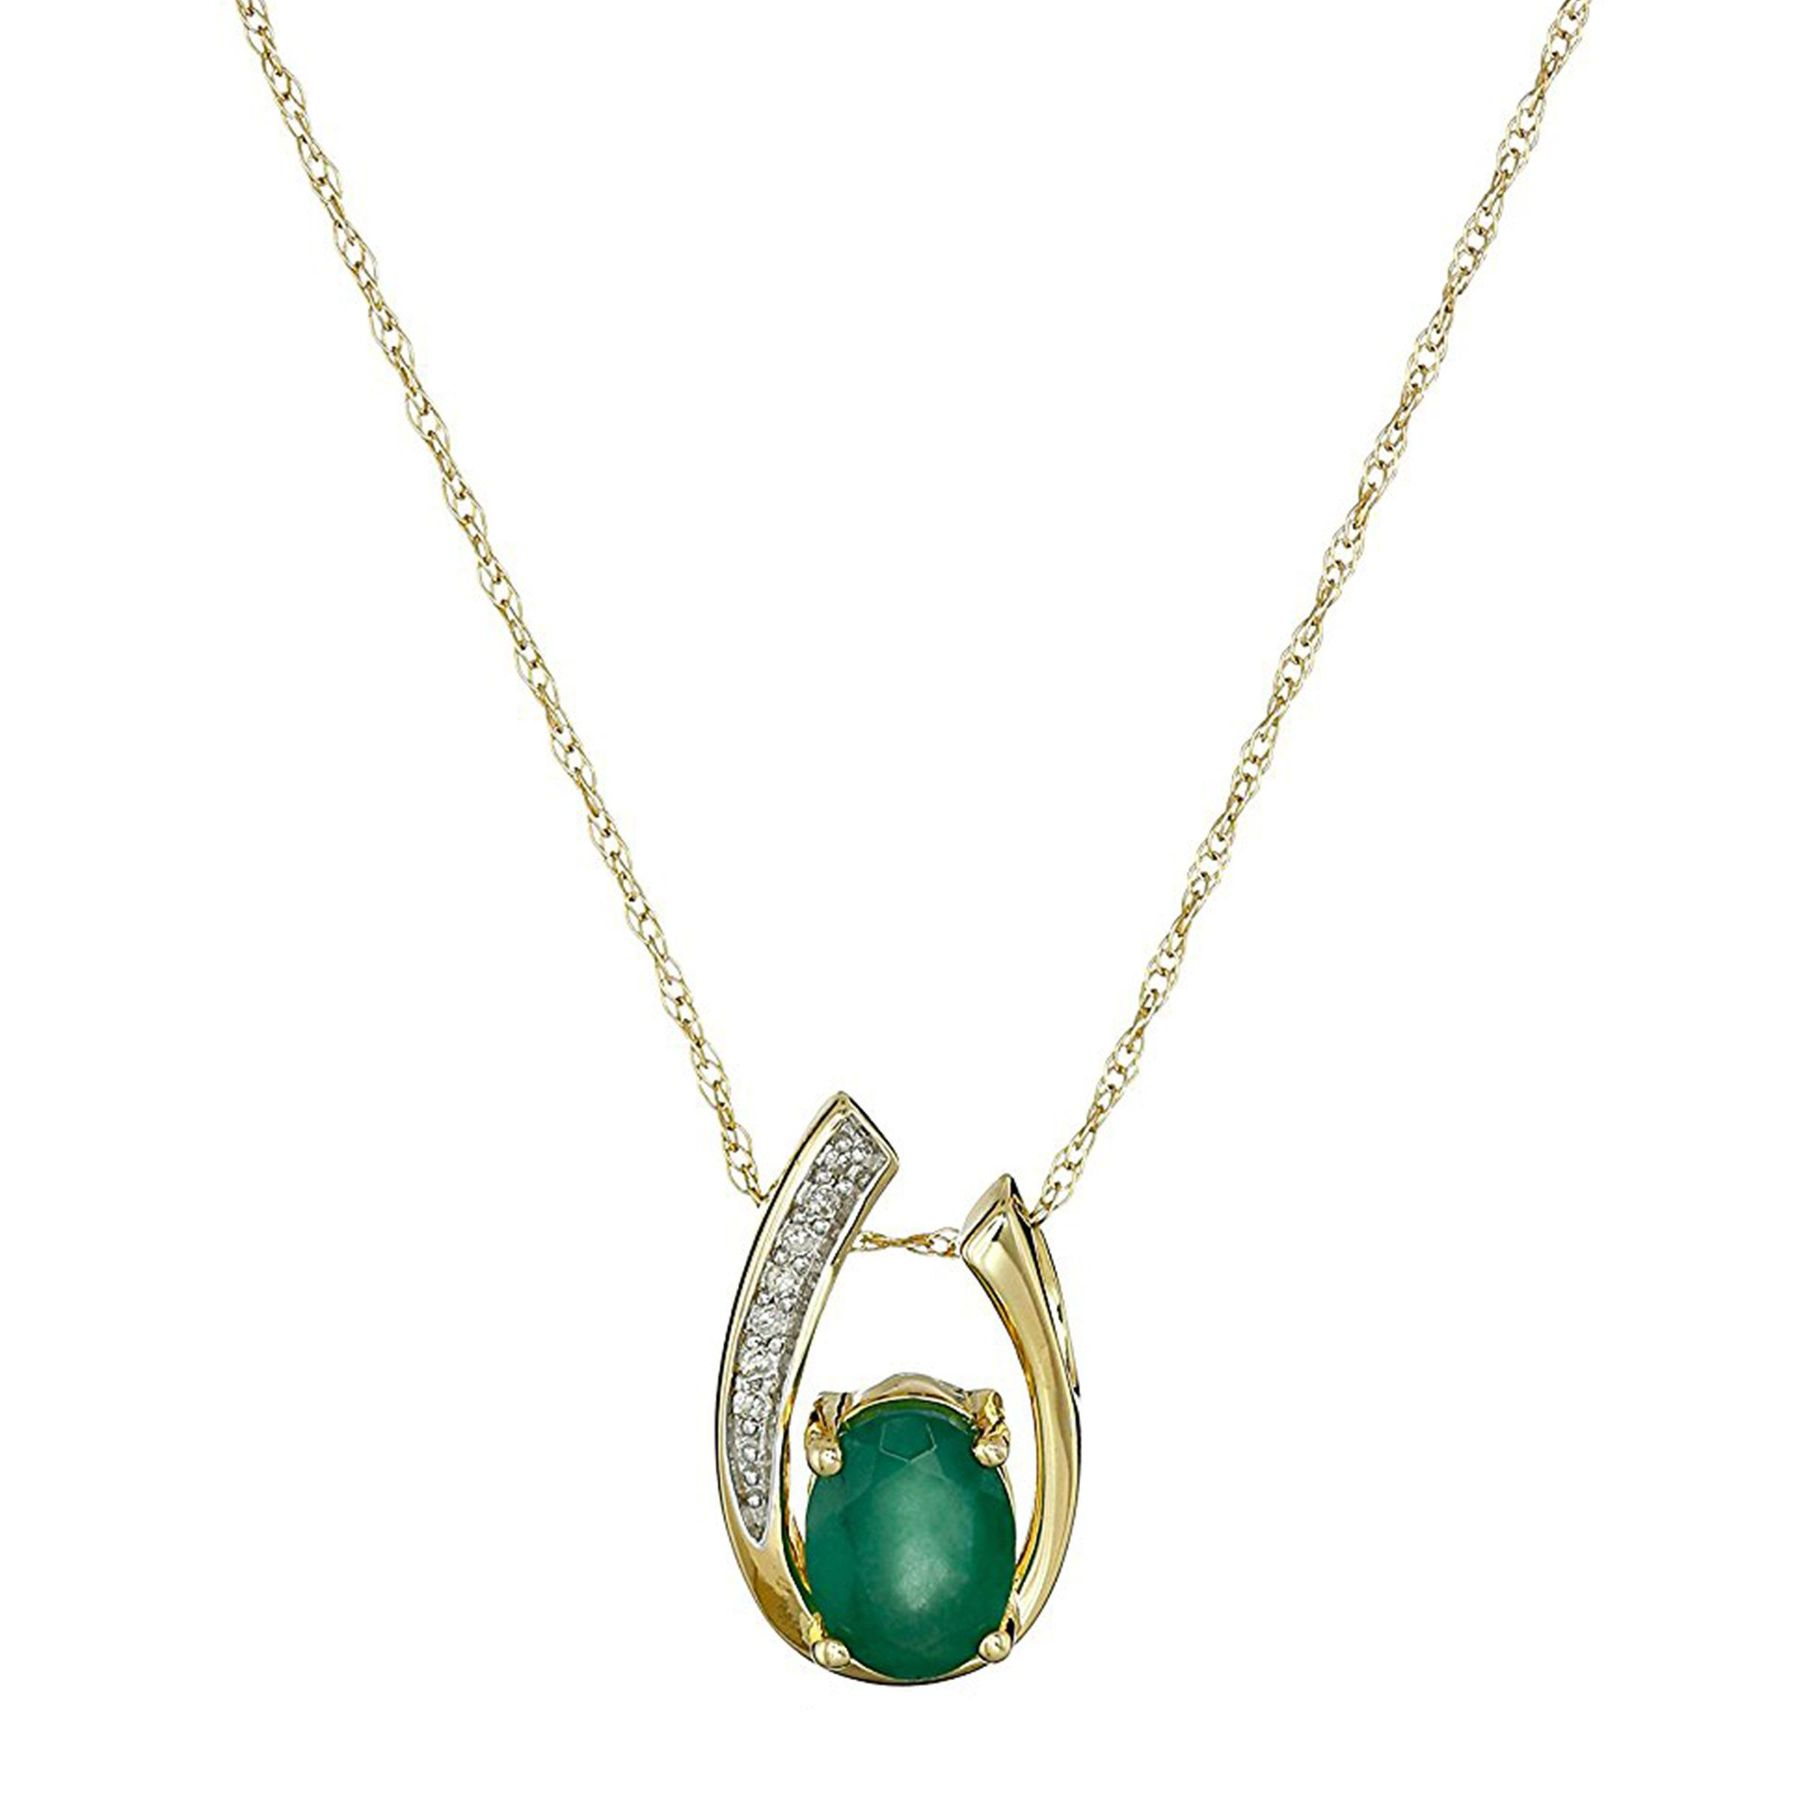 silver quality certified necklaces piece img premium natural products pendant emerald chain